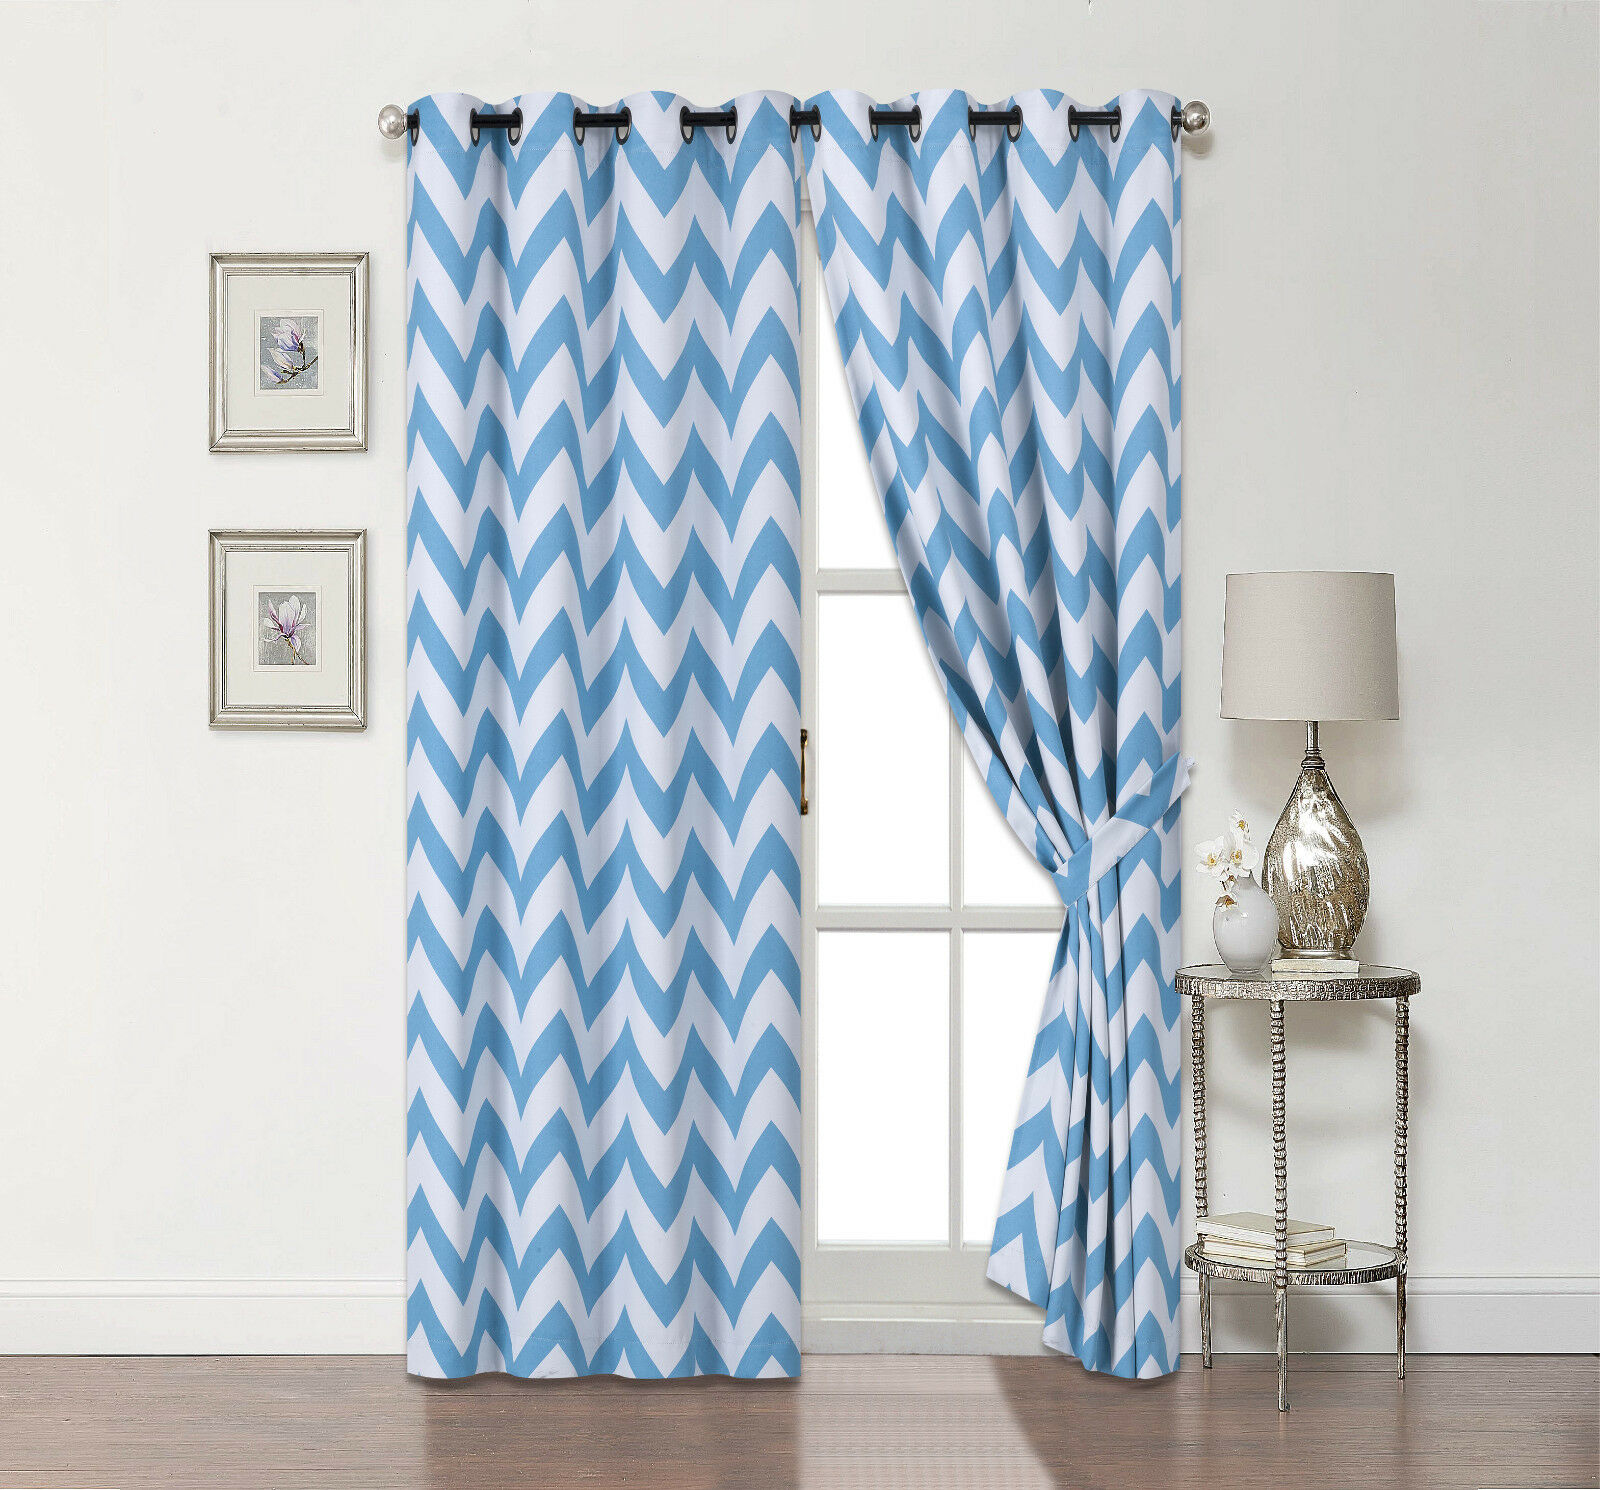 2 Pack: Chevron 100% Blackout Curtains W/ Tiebacks - Assorted Colors & Sizes